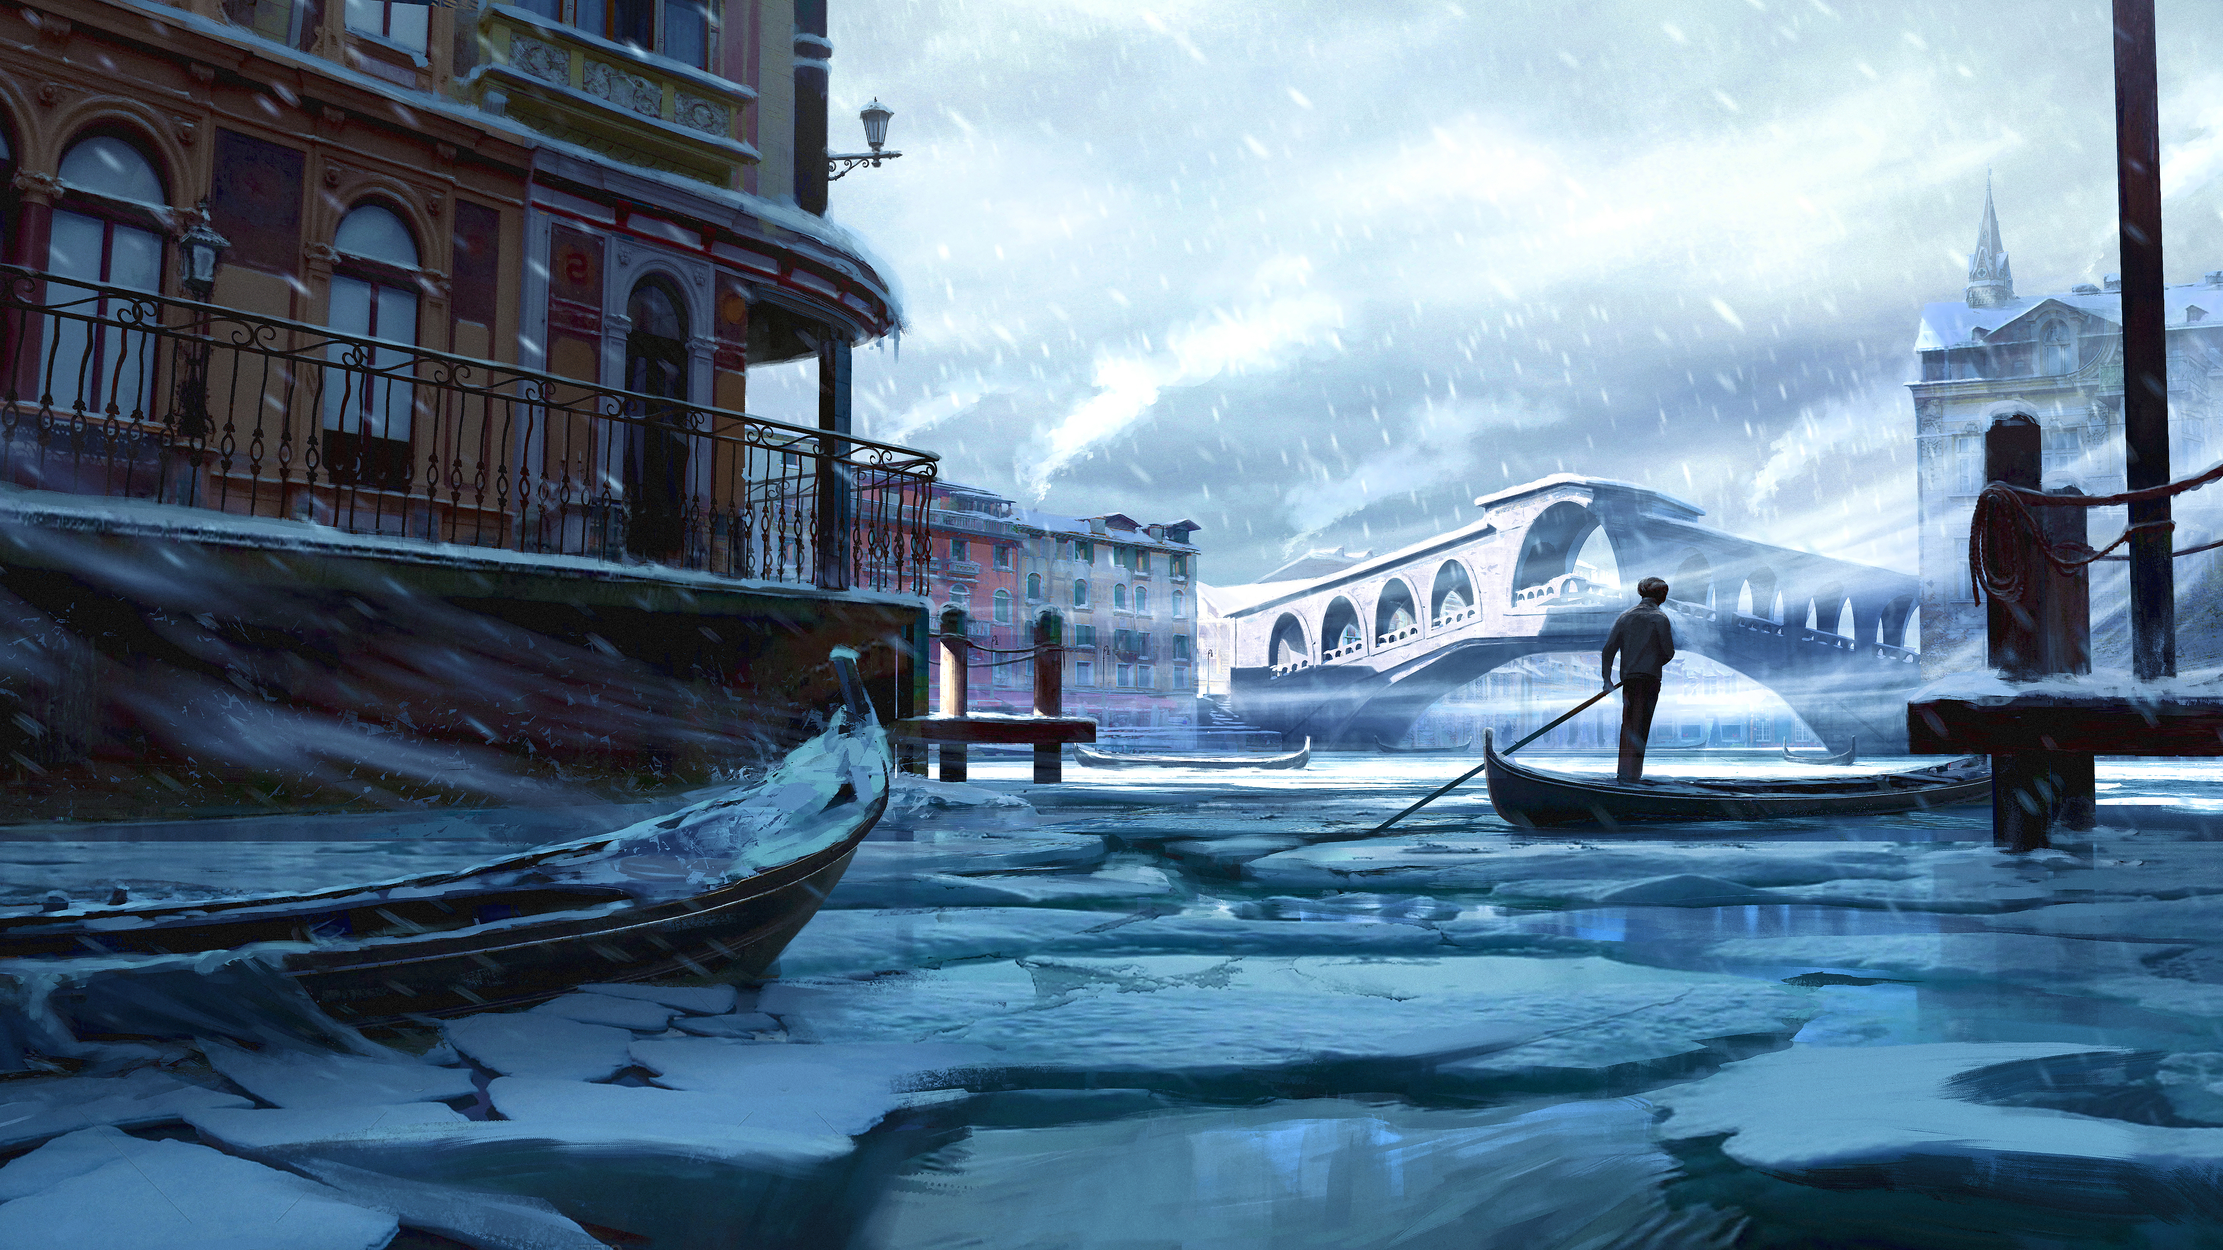 Venetian Winter Artwork by Ryan Richmond